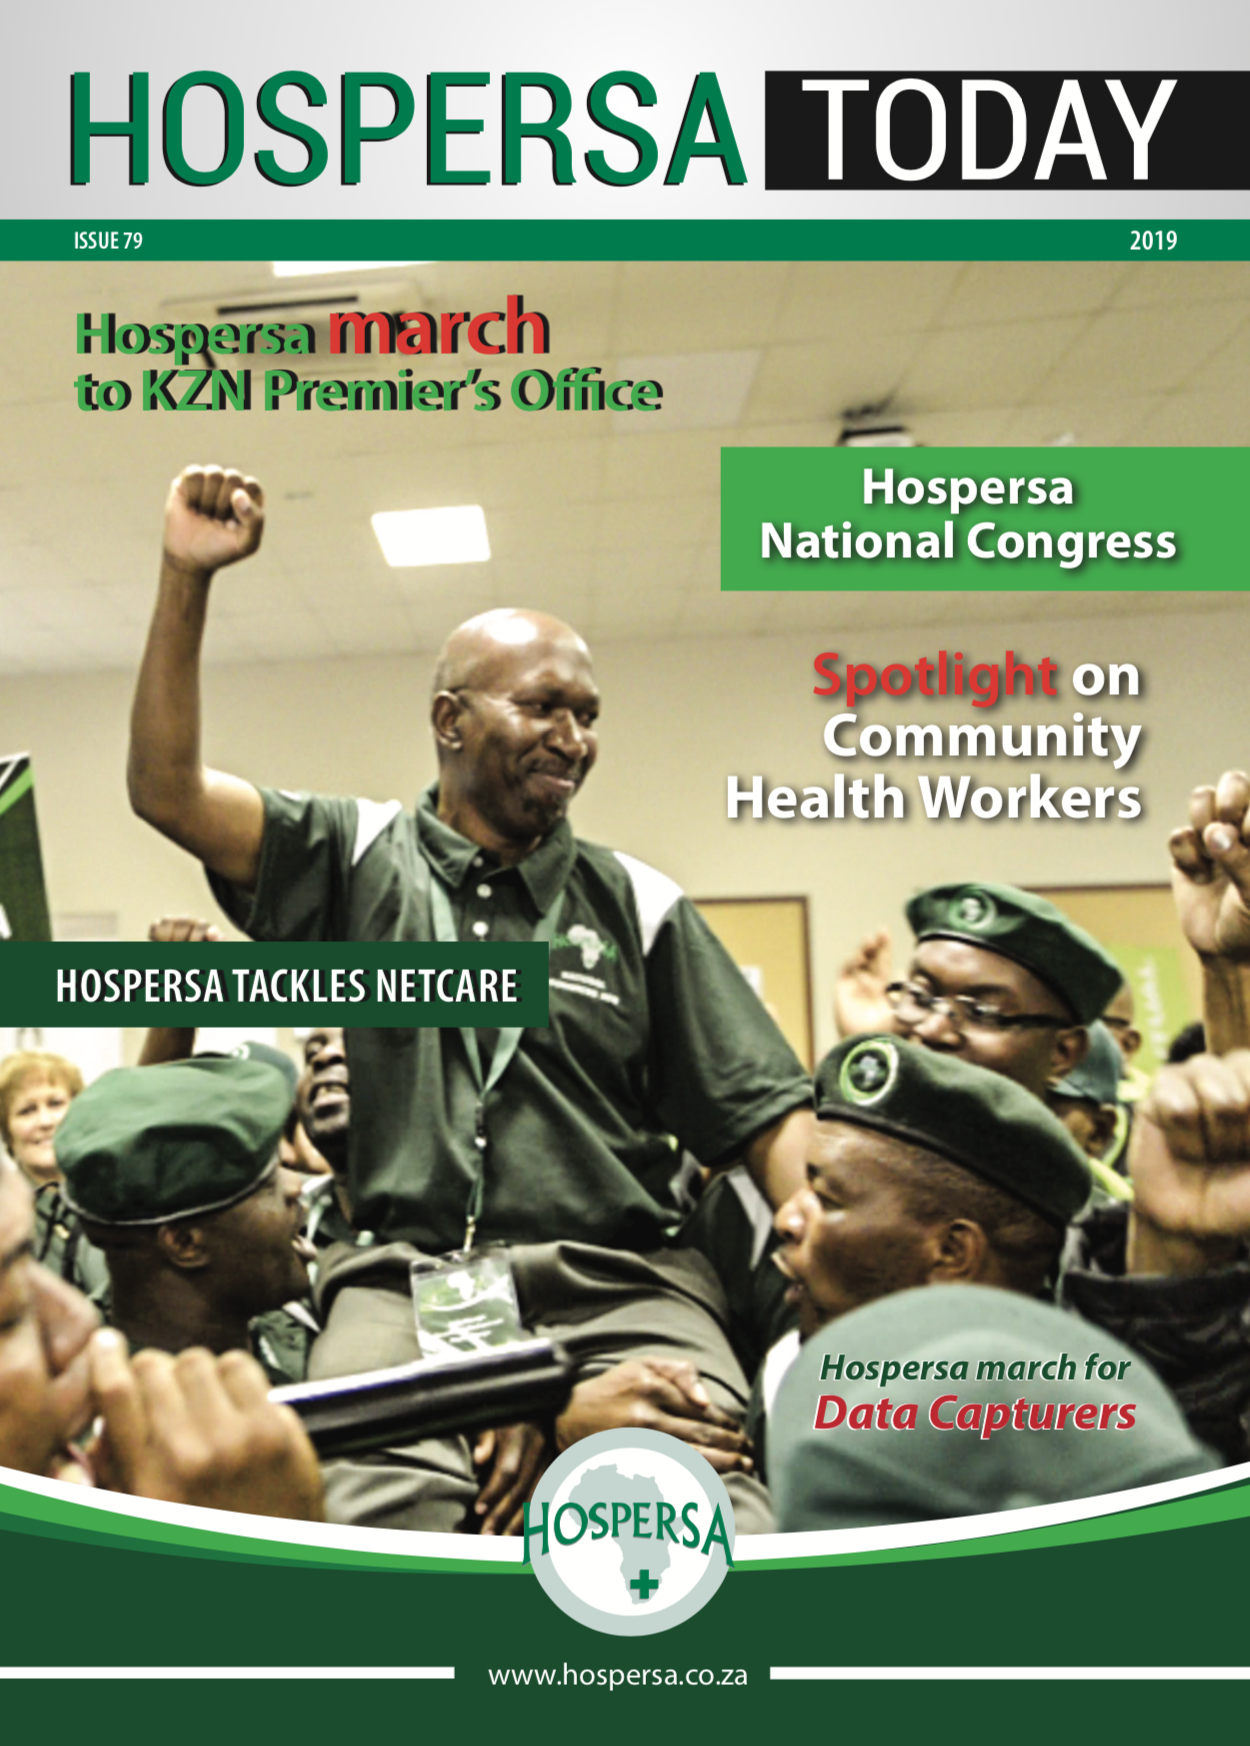 HOSPERSA TODAY MAGAZINE